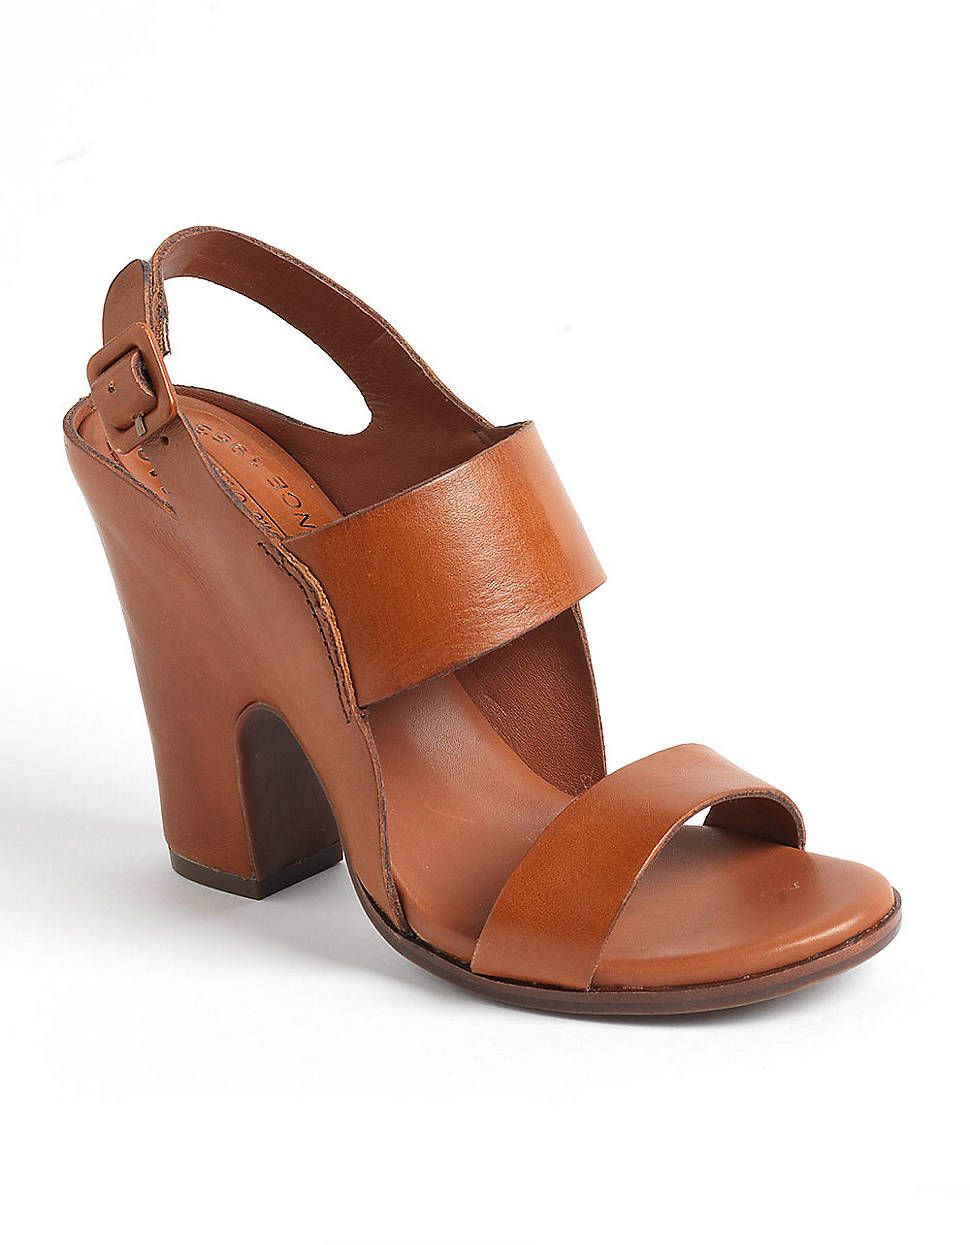 6b69e0a25da Sloane Wedge Sandals | Lord and Taylor | All The Shoes in 2019 ...